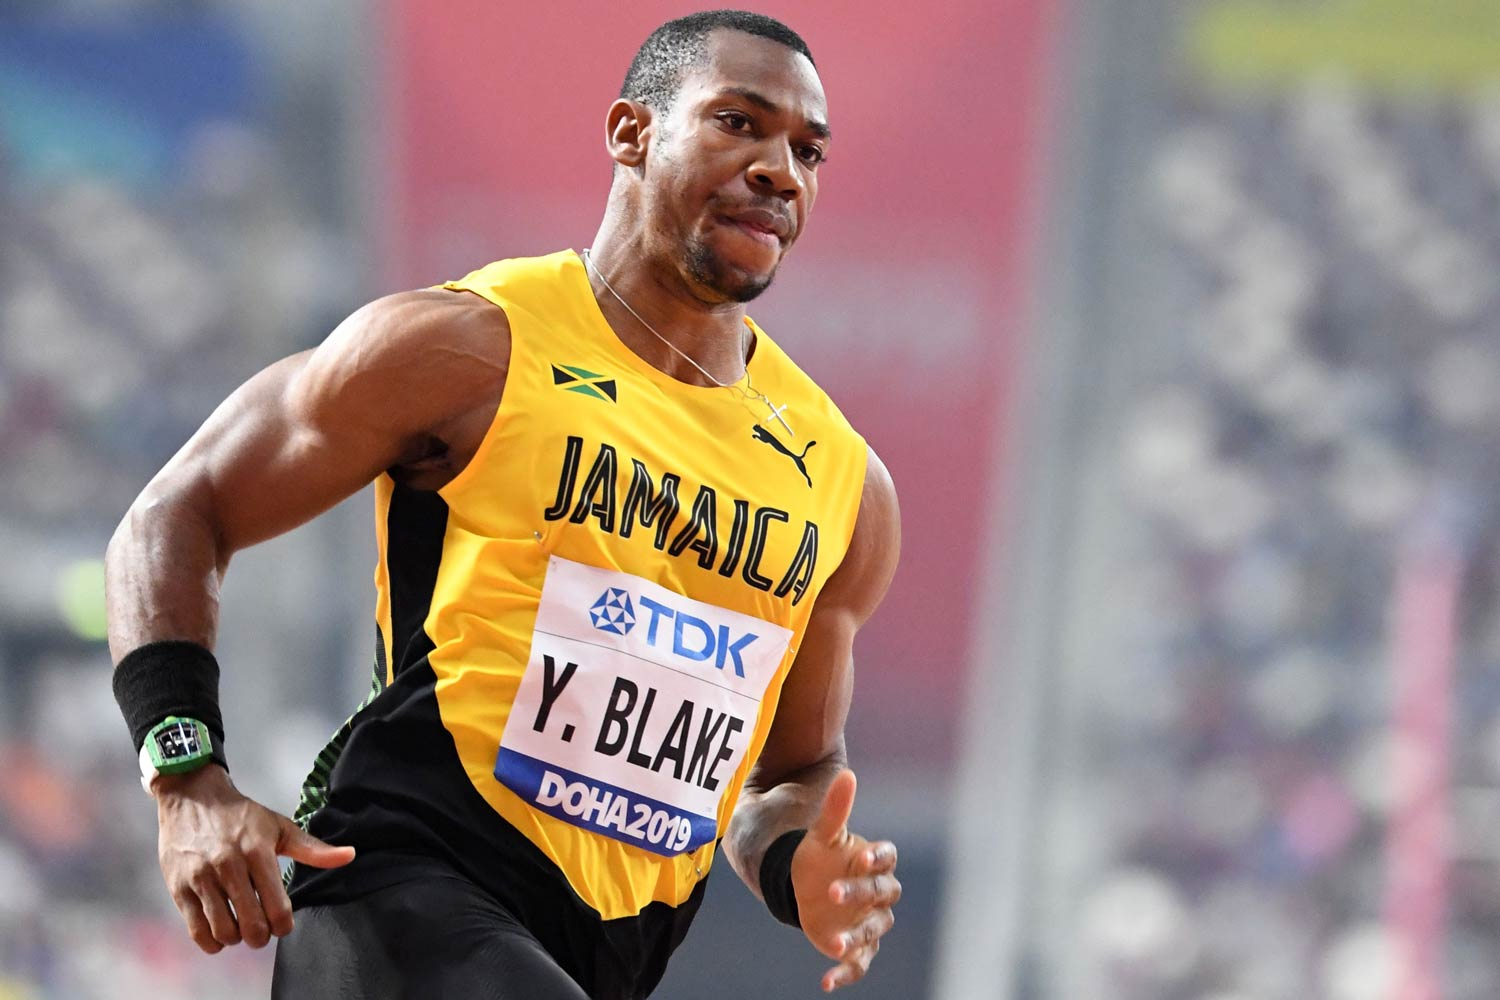 Jamaica's Yohan Blake at the 2019 IAAF World Athletics Championships in Doha. (Photo: JEWEL SAMAD/AFP via Getty Images)